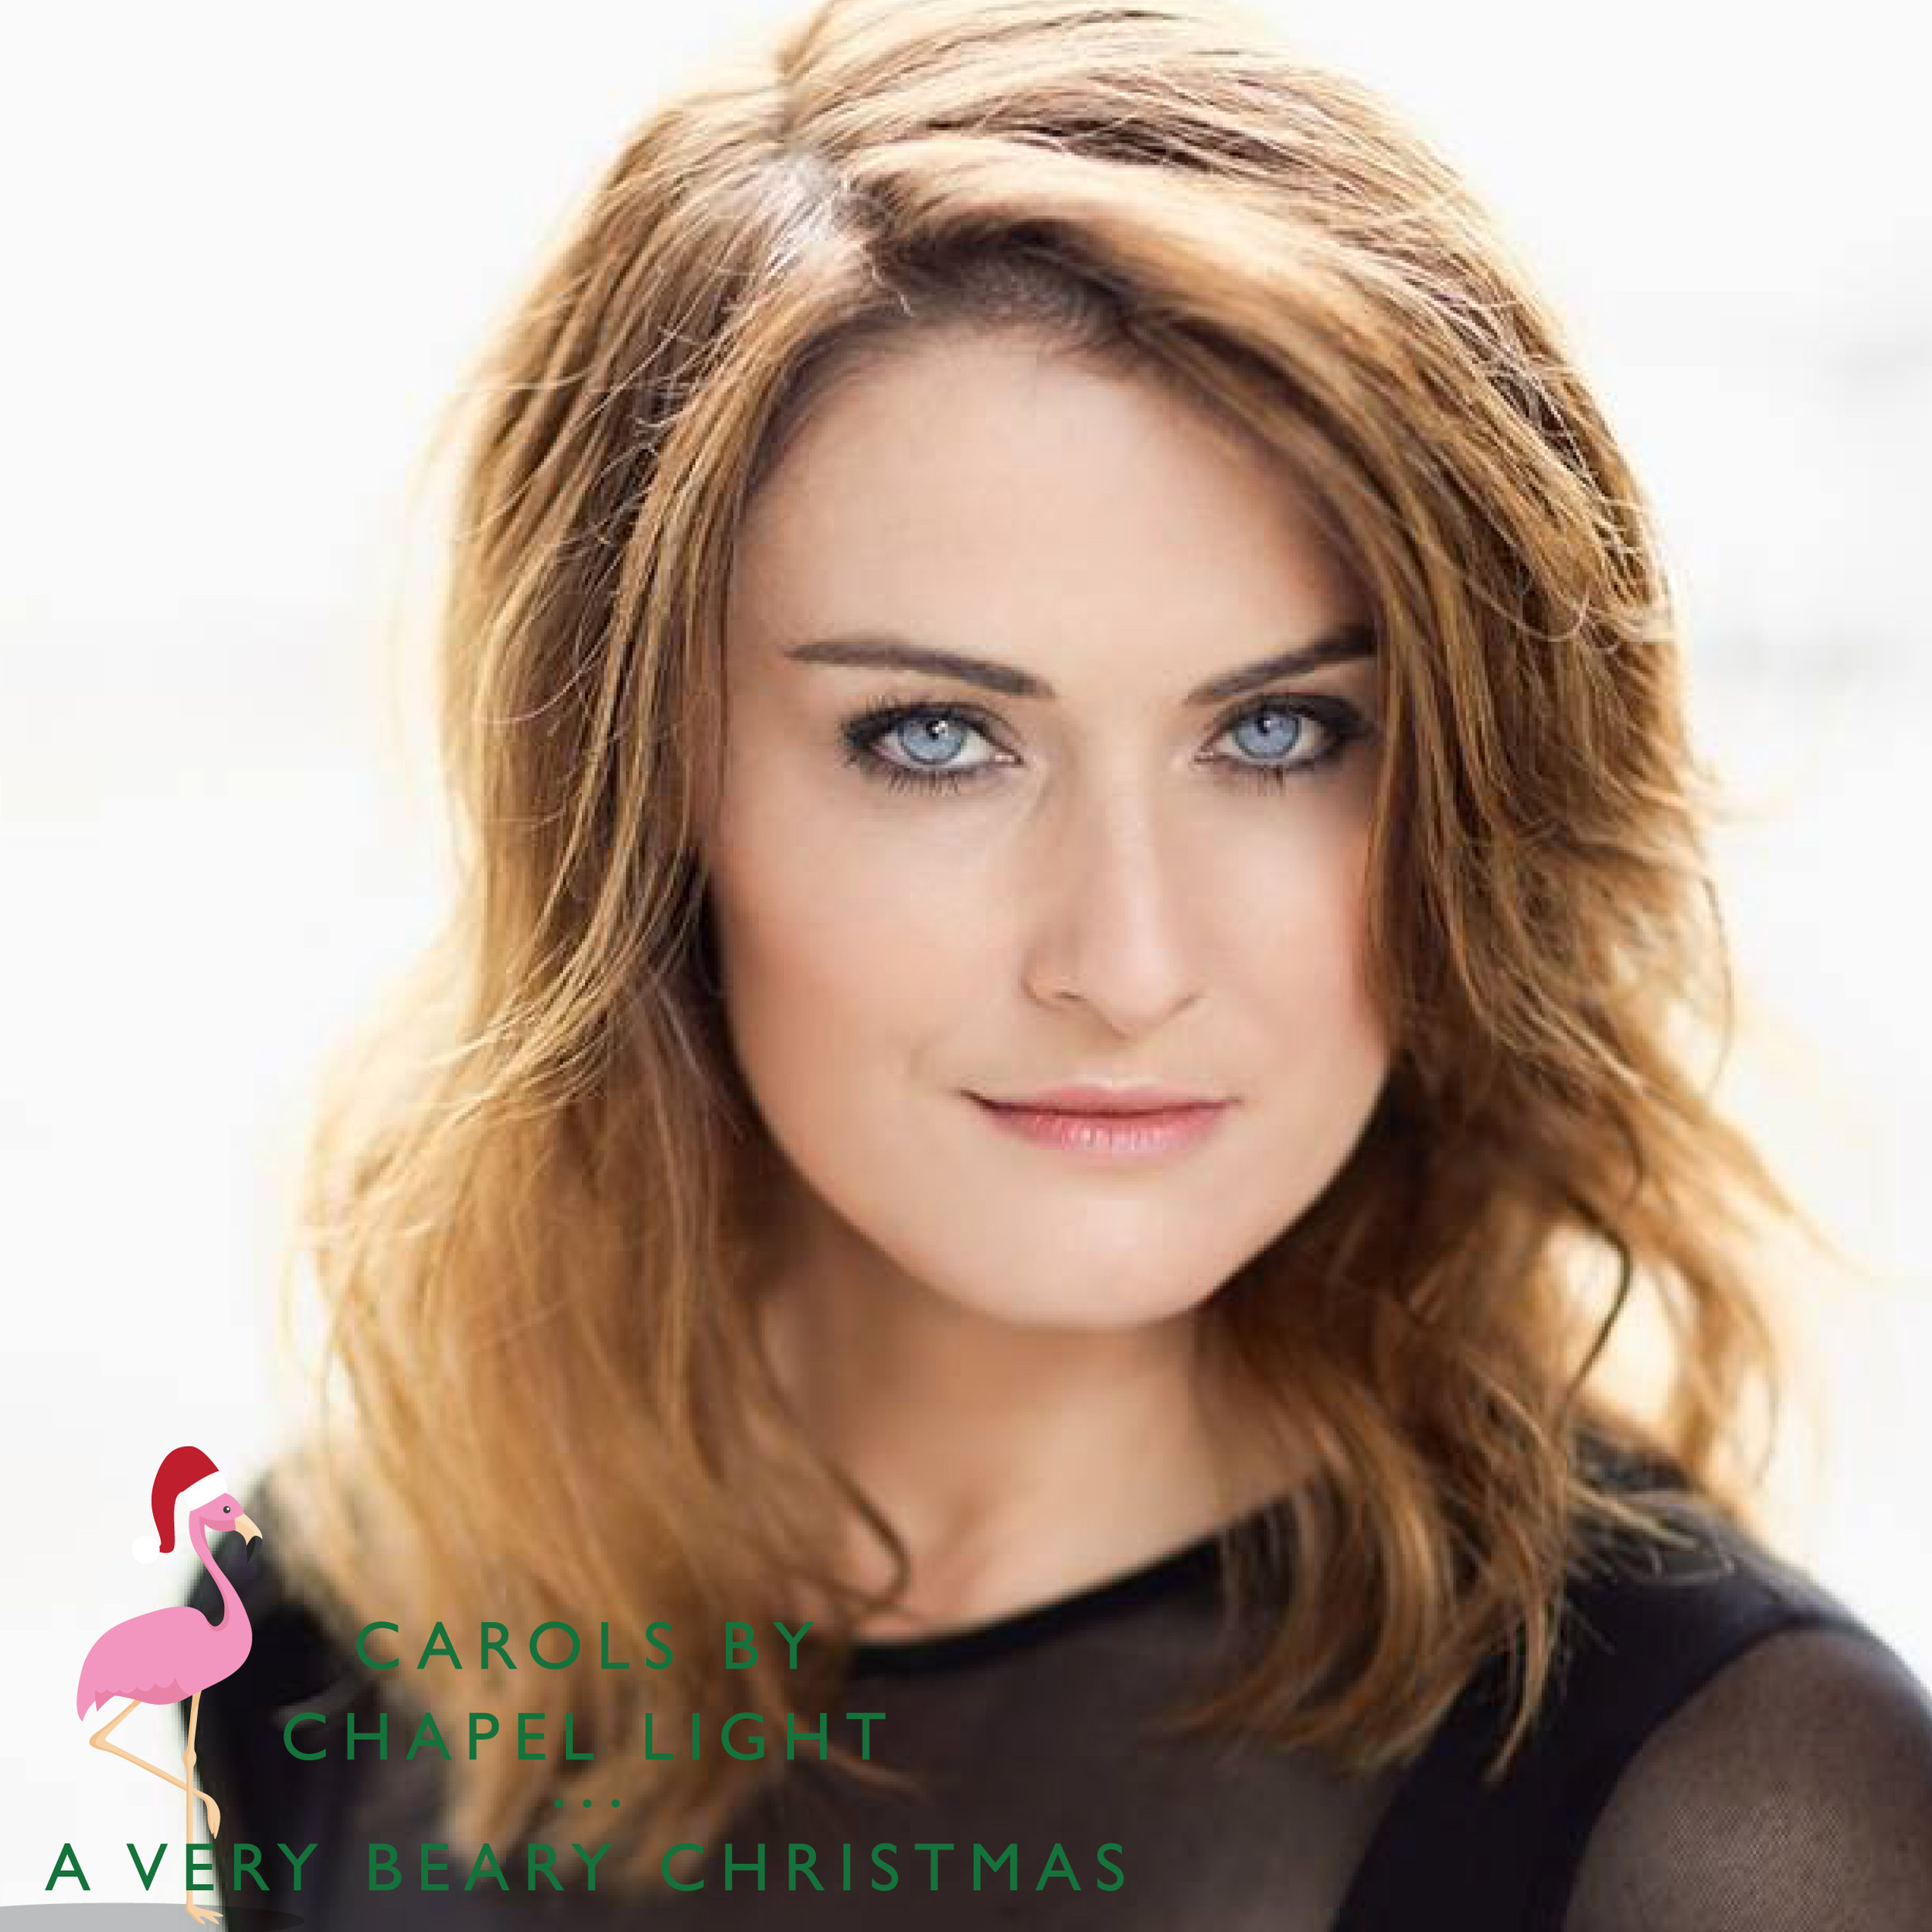 PBB-CAROLS_INSTA_Headshot_KatieWeston.jpg